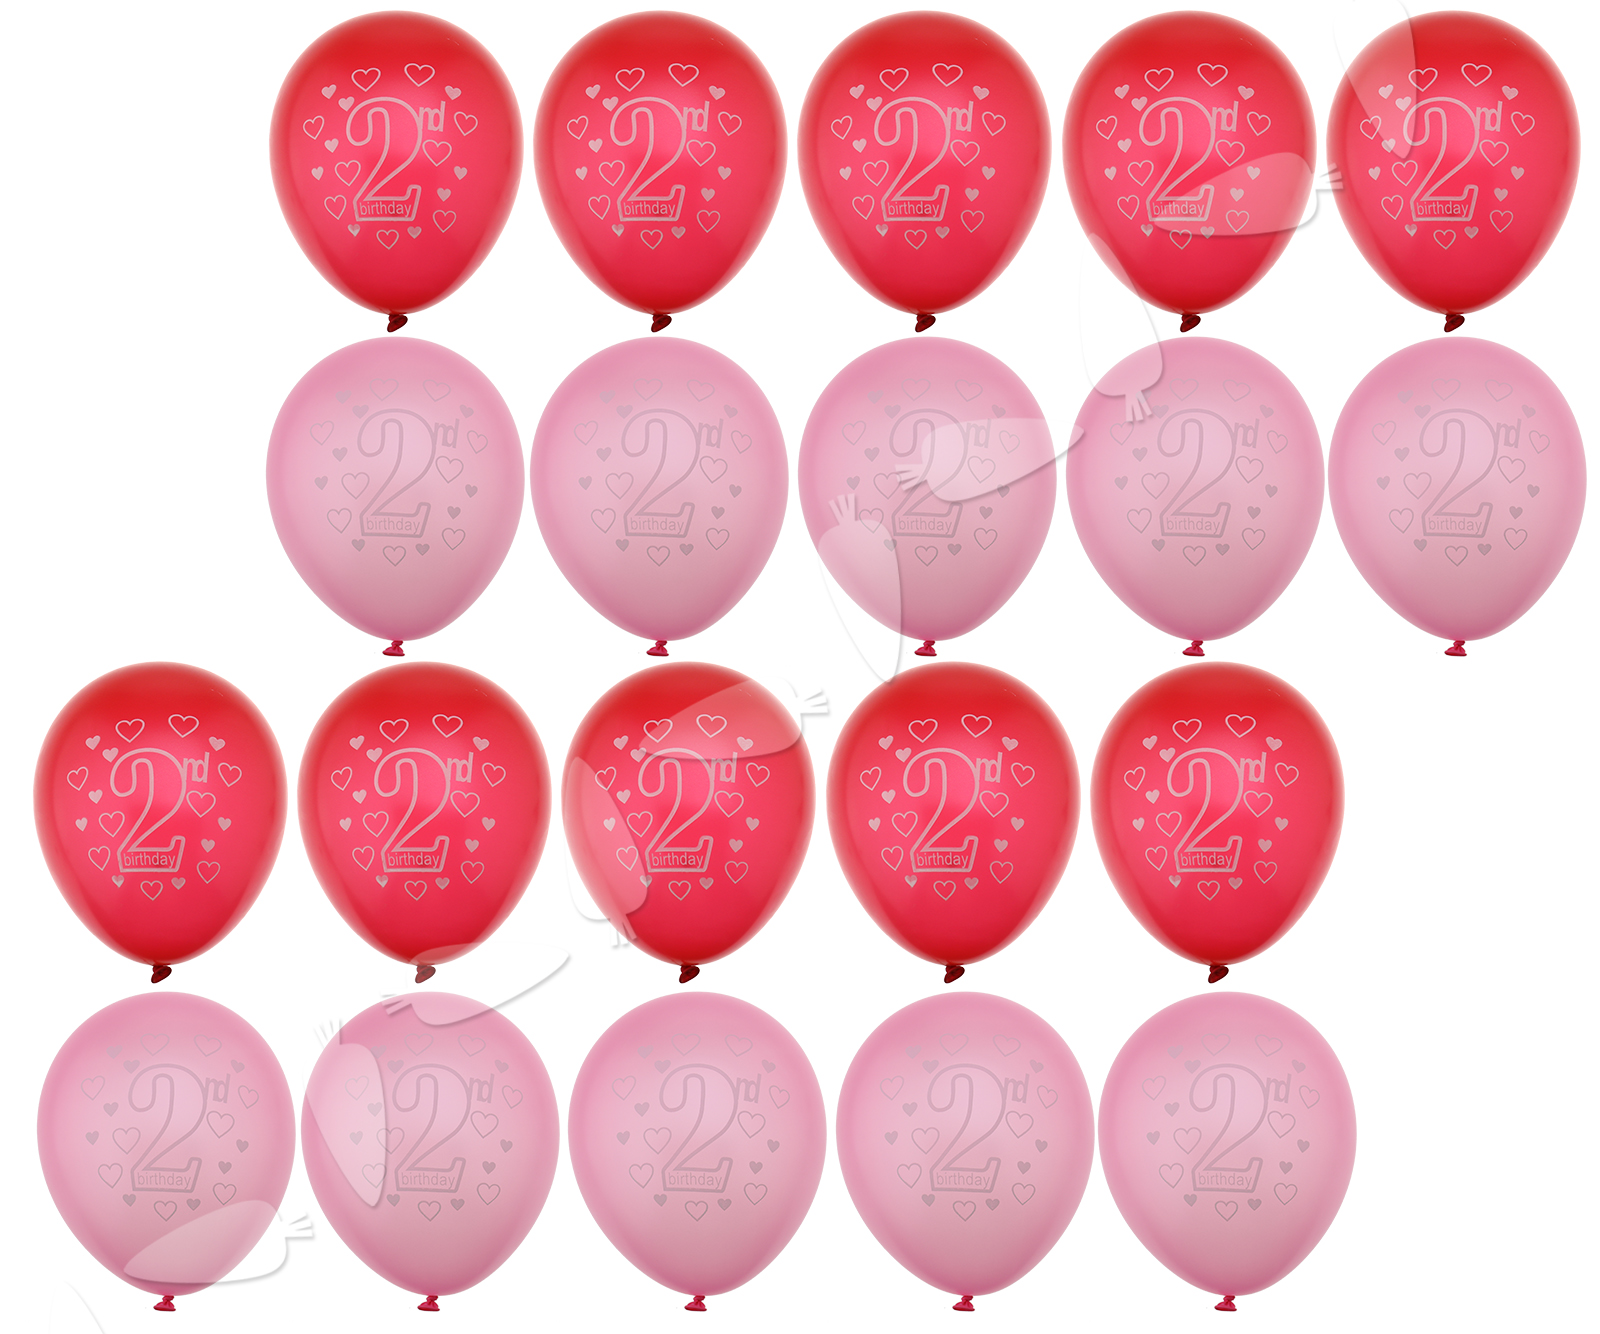 20Pcs-28cm-PINK-Blue-2nd-Birthday-Heart-Printed-Latex-Balloons-Party-Decoration